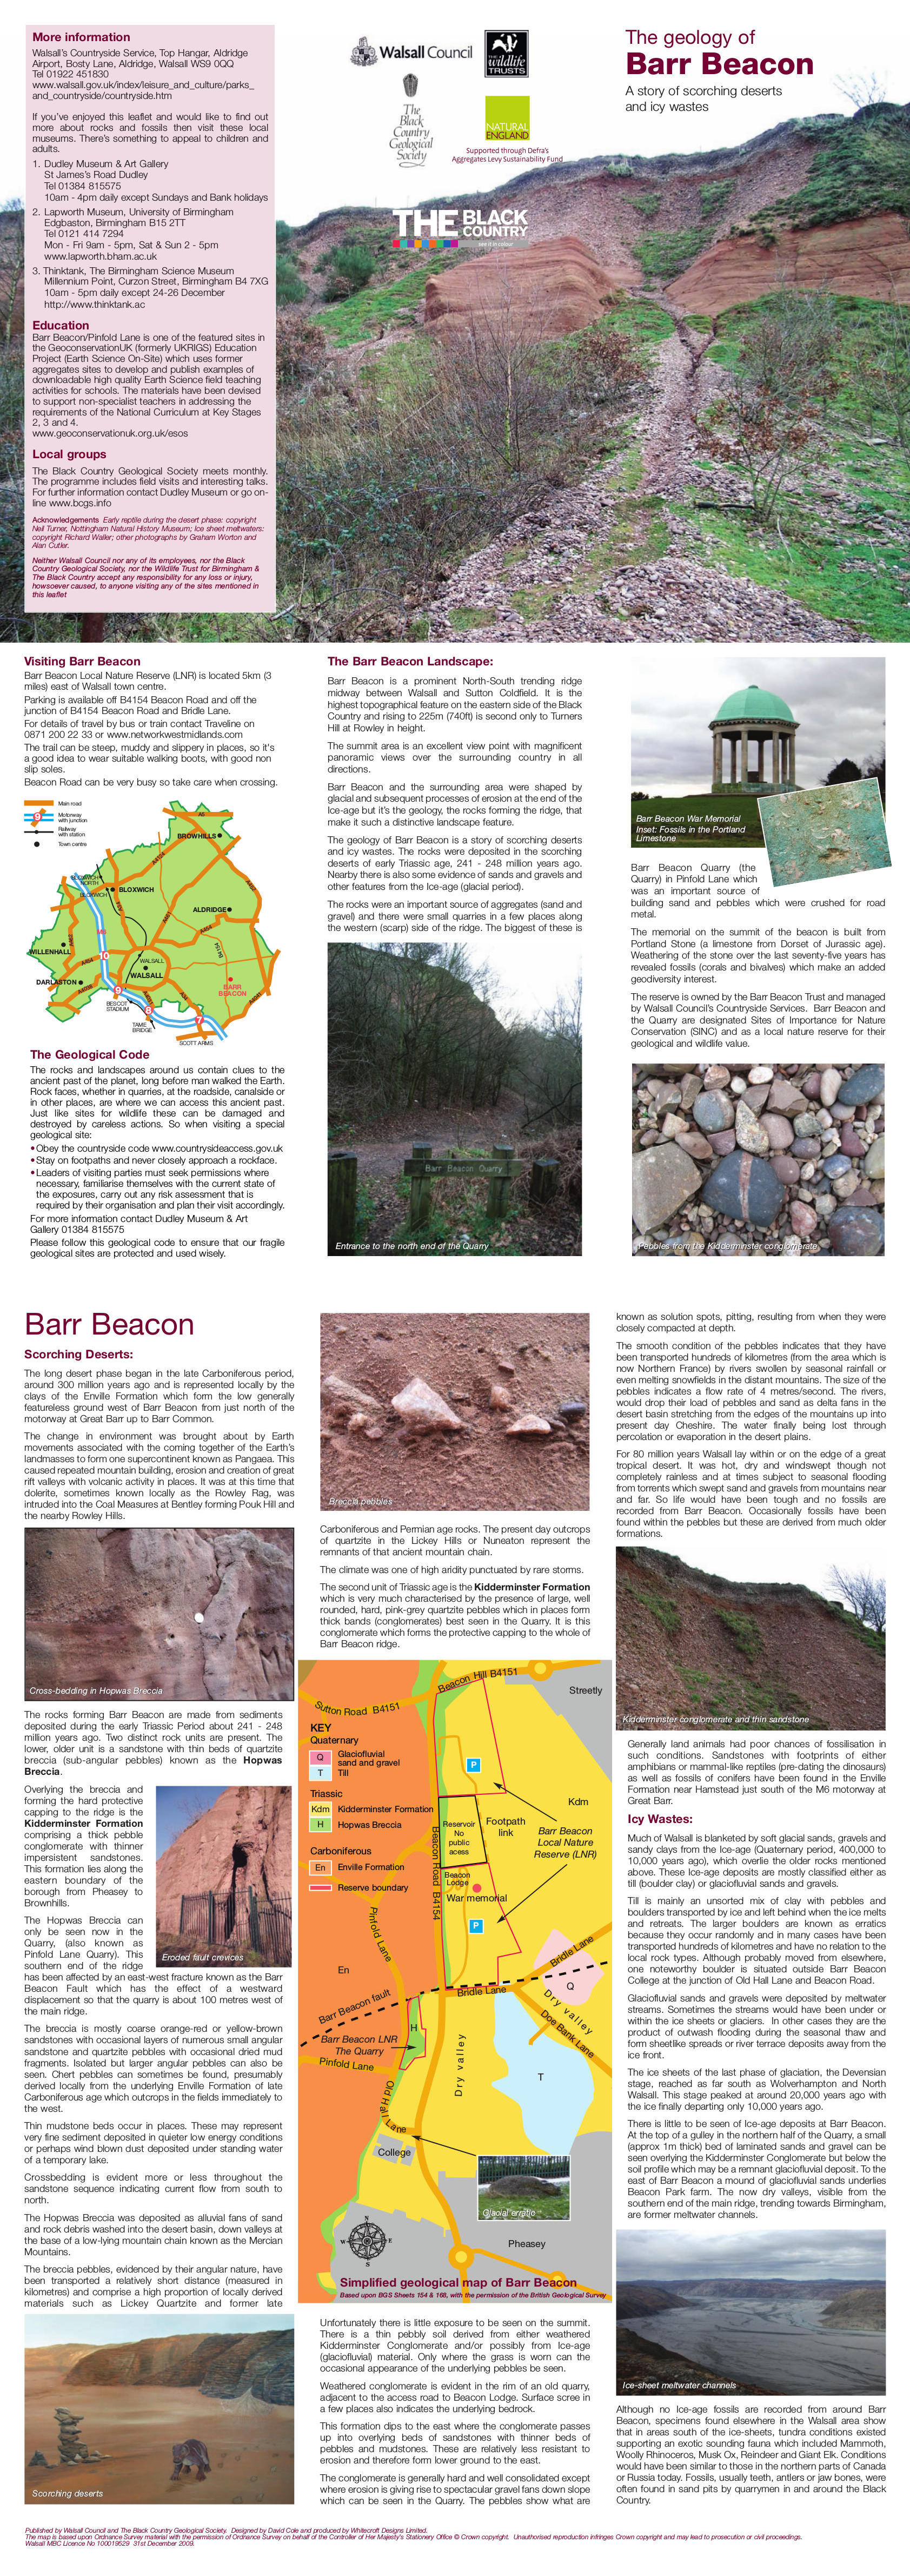 barrbeacon_leaflet_2009